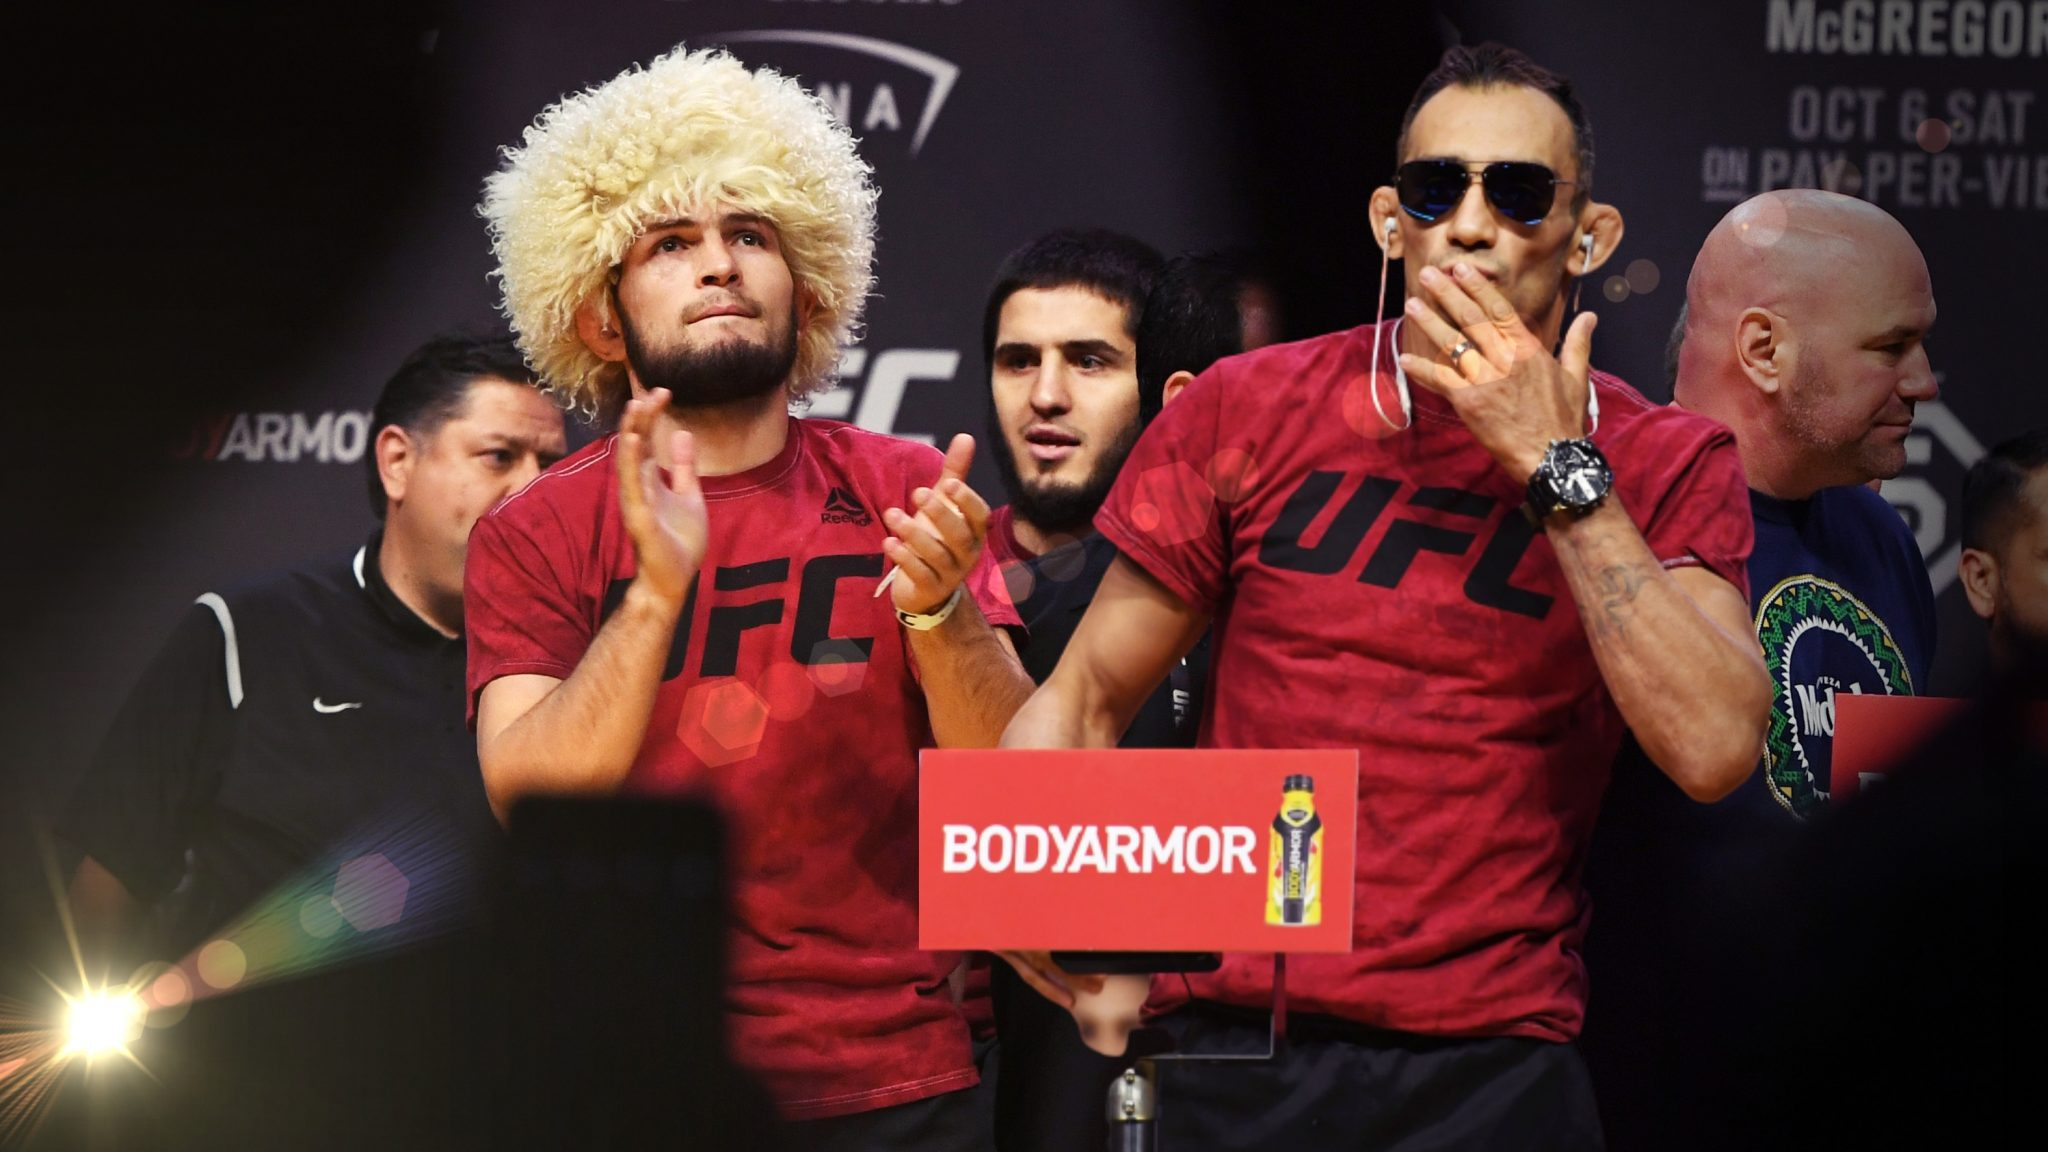 Floyd-Khabib boxing-MMA fight might actually work